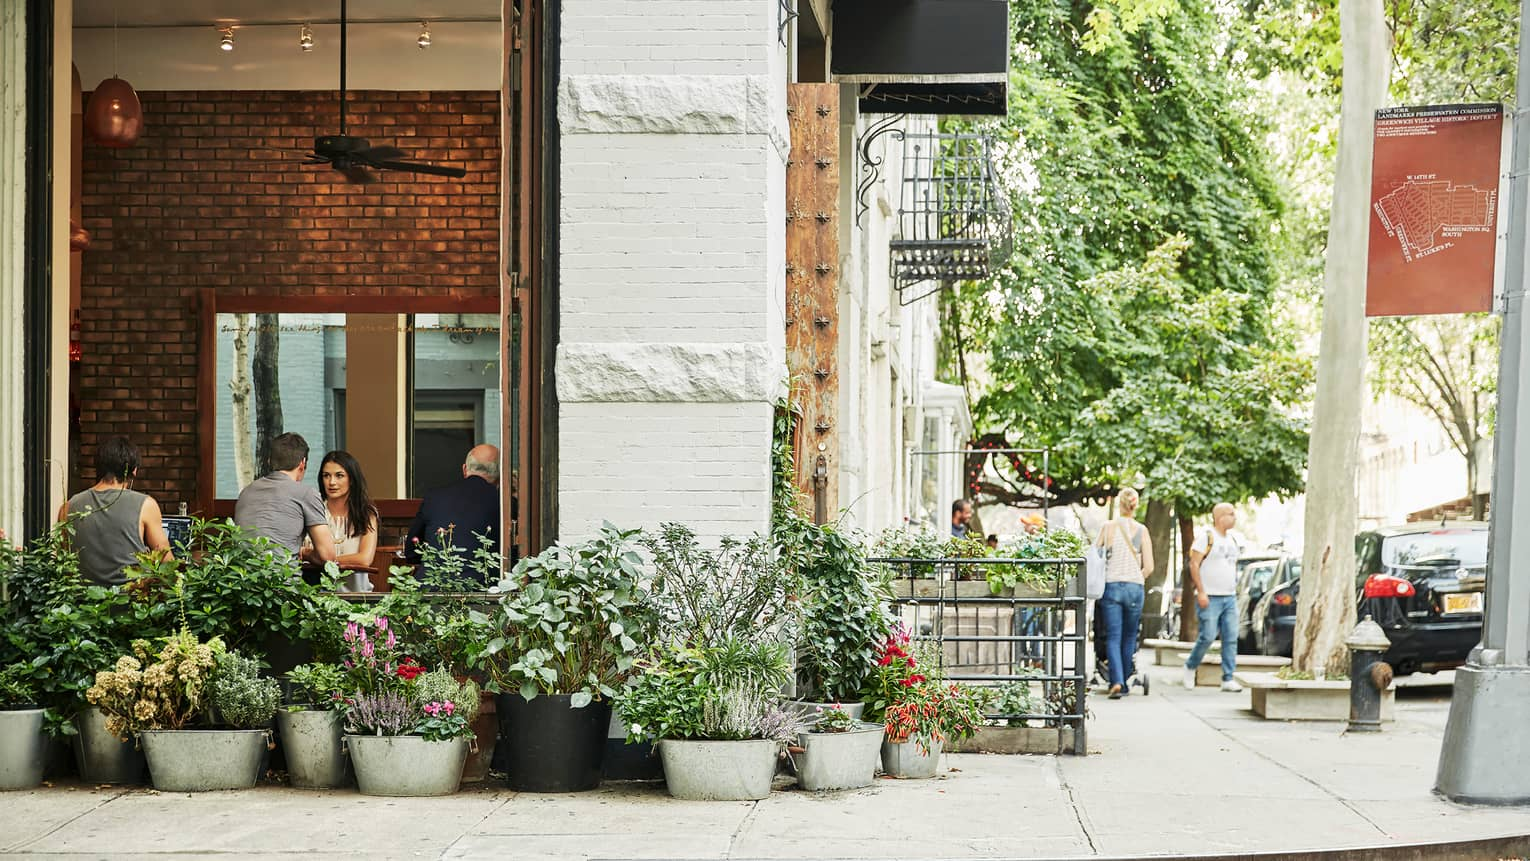 Exterior view of building on city corner, diners by open window with metal planters, flowers